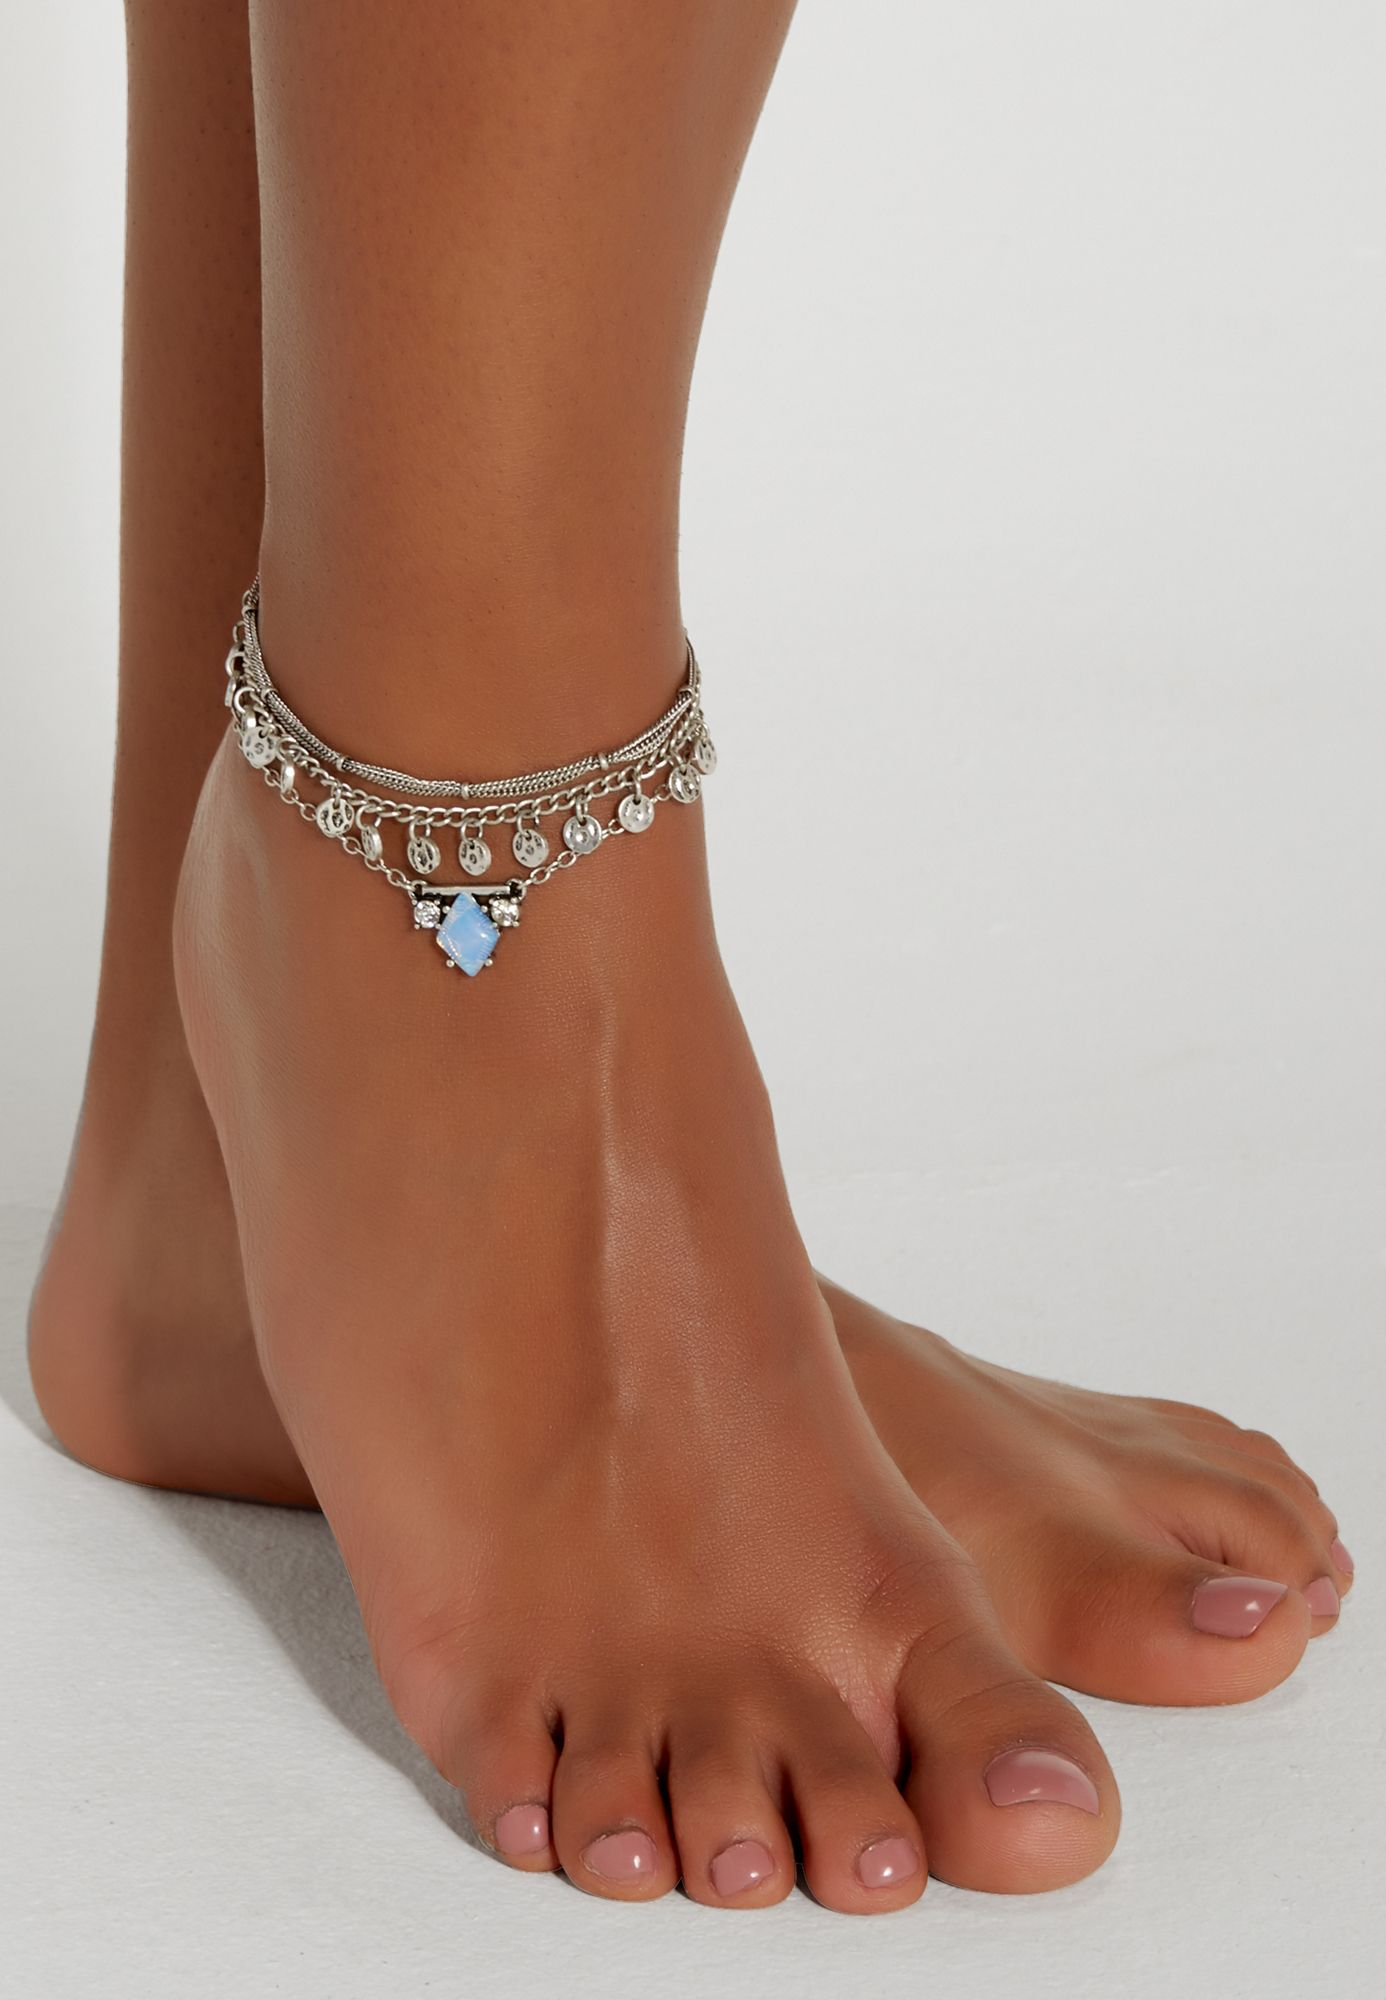 anklet infinity gold bracelet jewellery ksvhs ankle custom p fancy uk bracelets